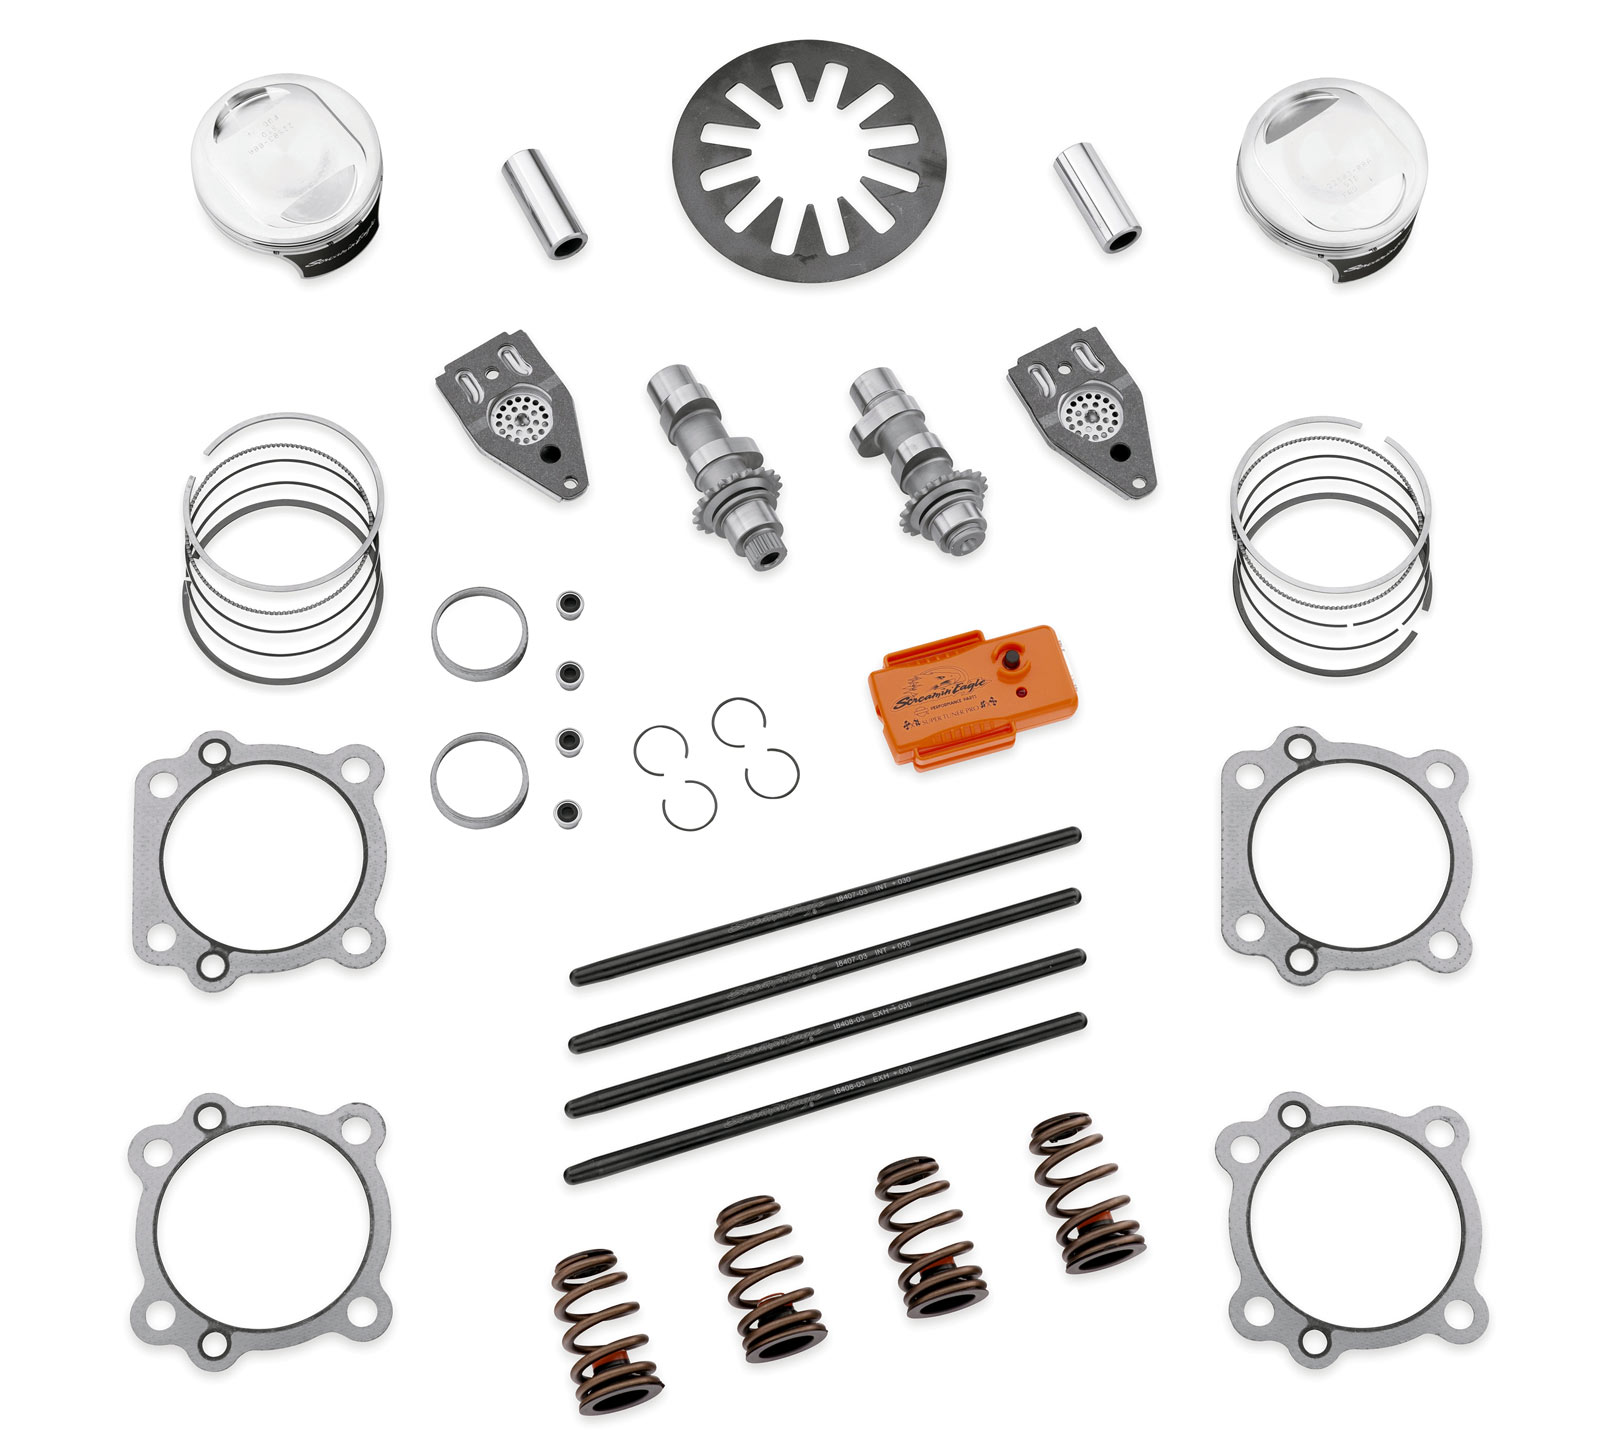 92500023a screamin eagle pro stage 3 kit